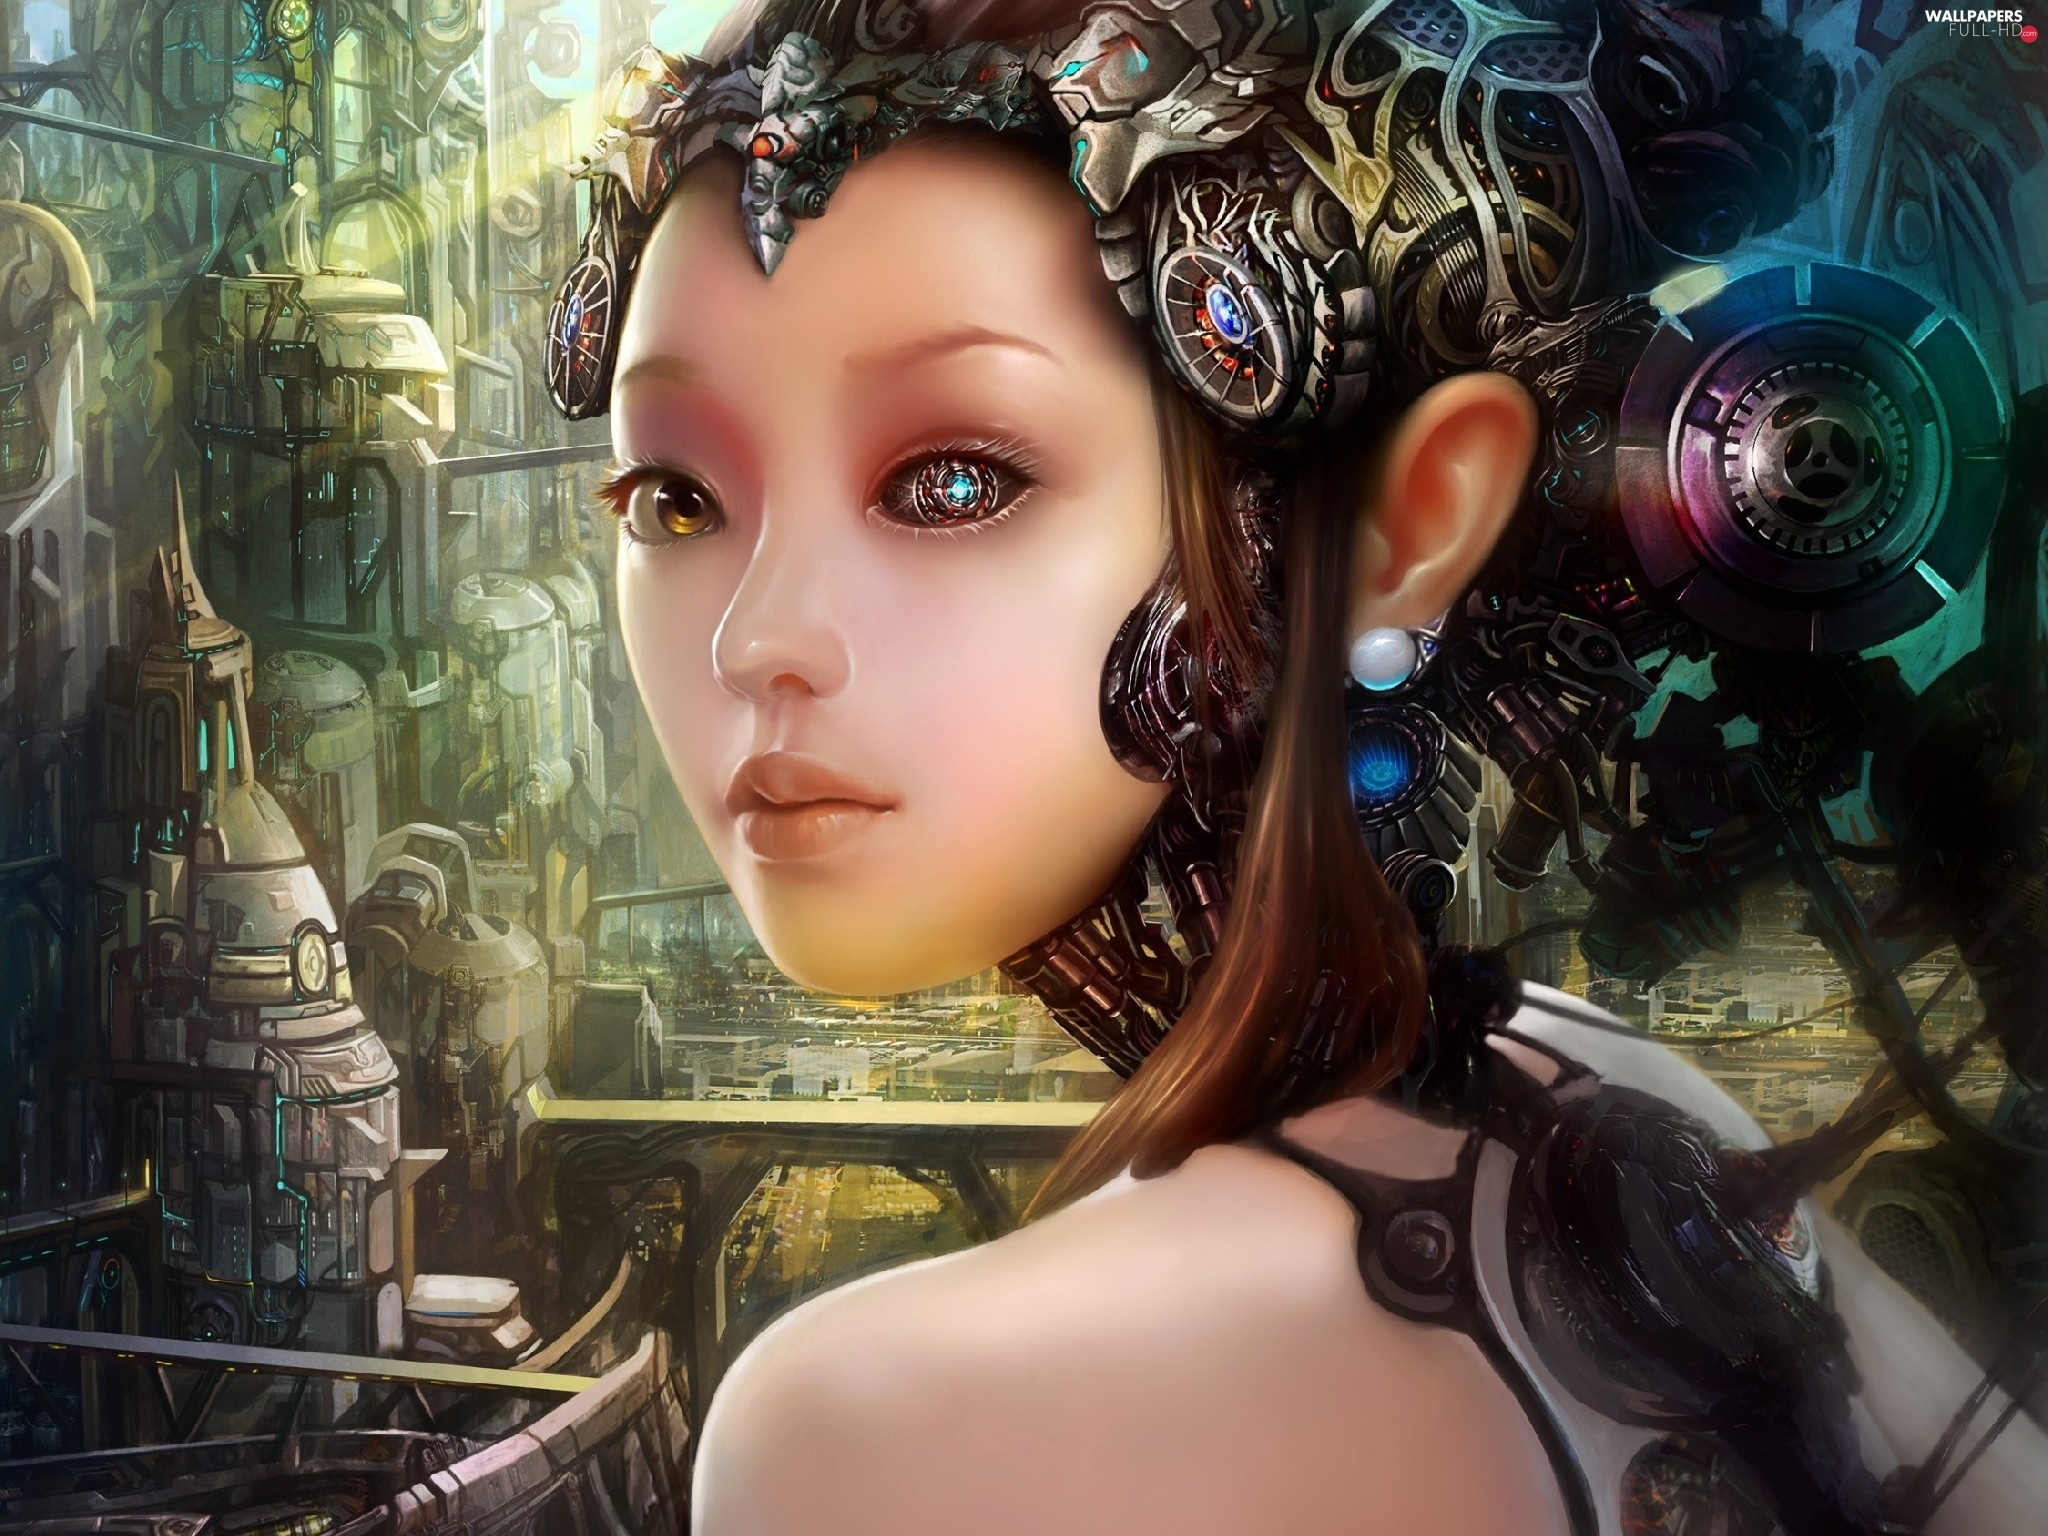 cyborg, The look, girl